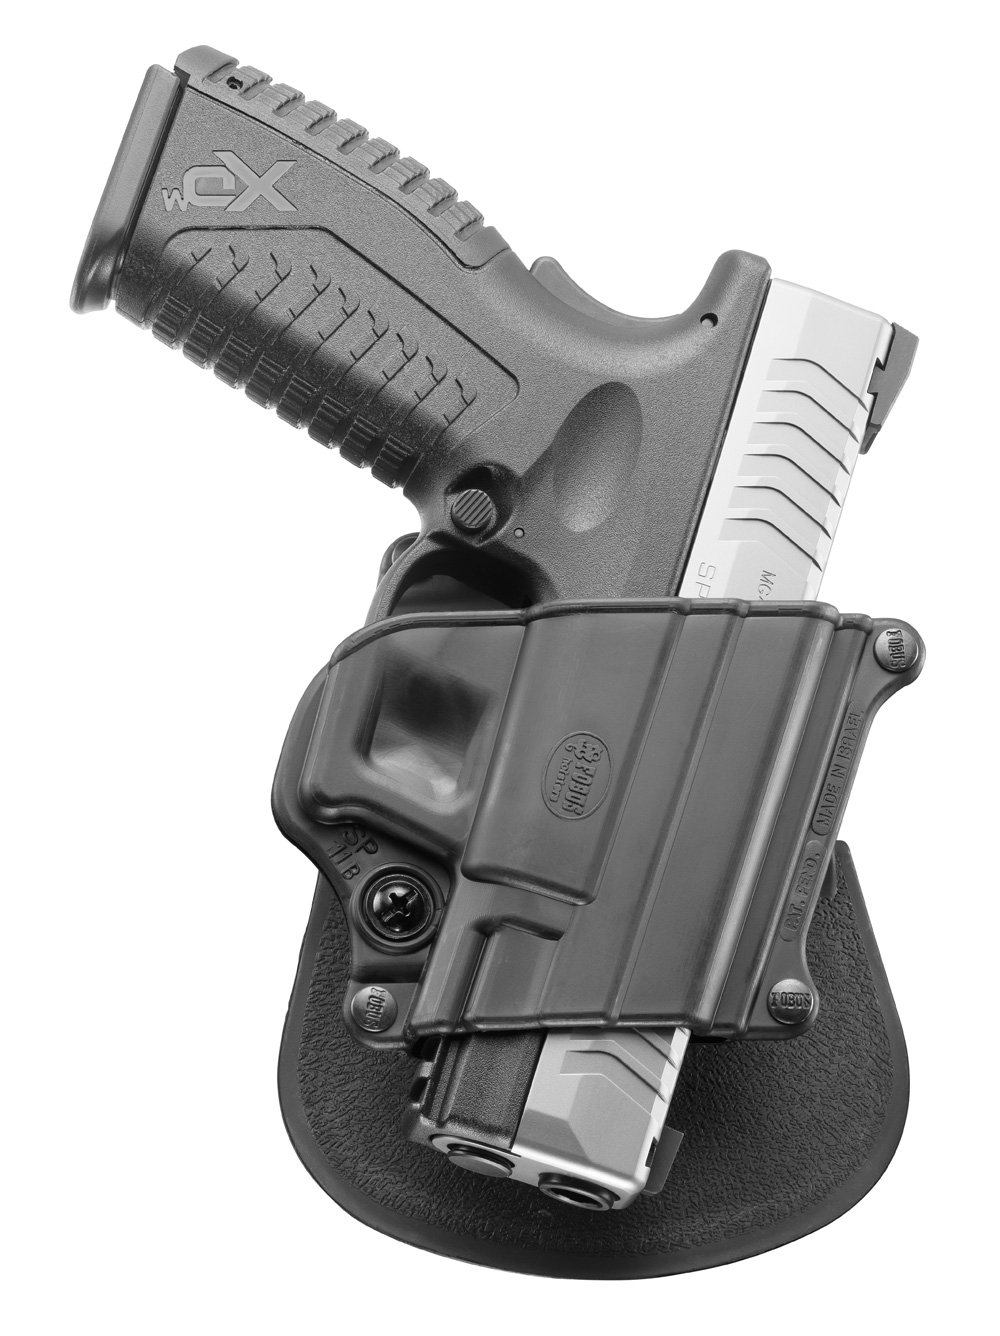 Fobus Concealed Carry hombro Holster para Springfield XD XDM/HS 2000/Taurus PT609, Nowo, PT 24/7. 9 & 40 mm + 6910 Mag. Bolsa: Amazon.es: Deportes y aire ...